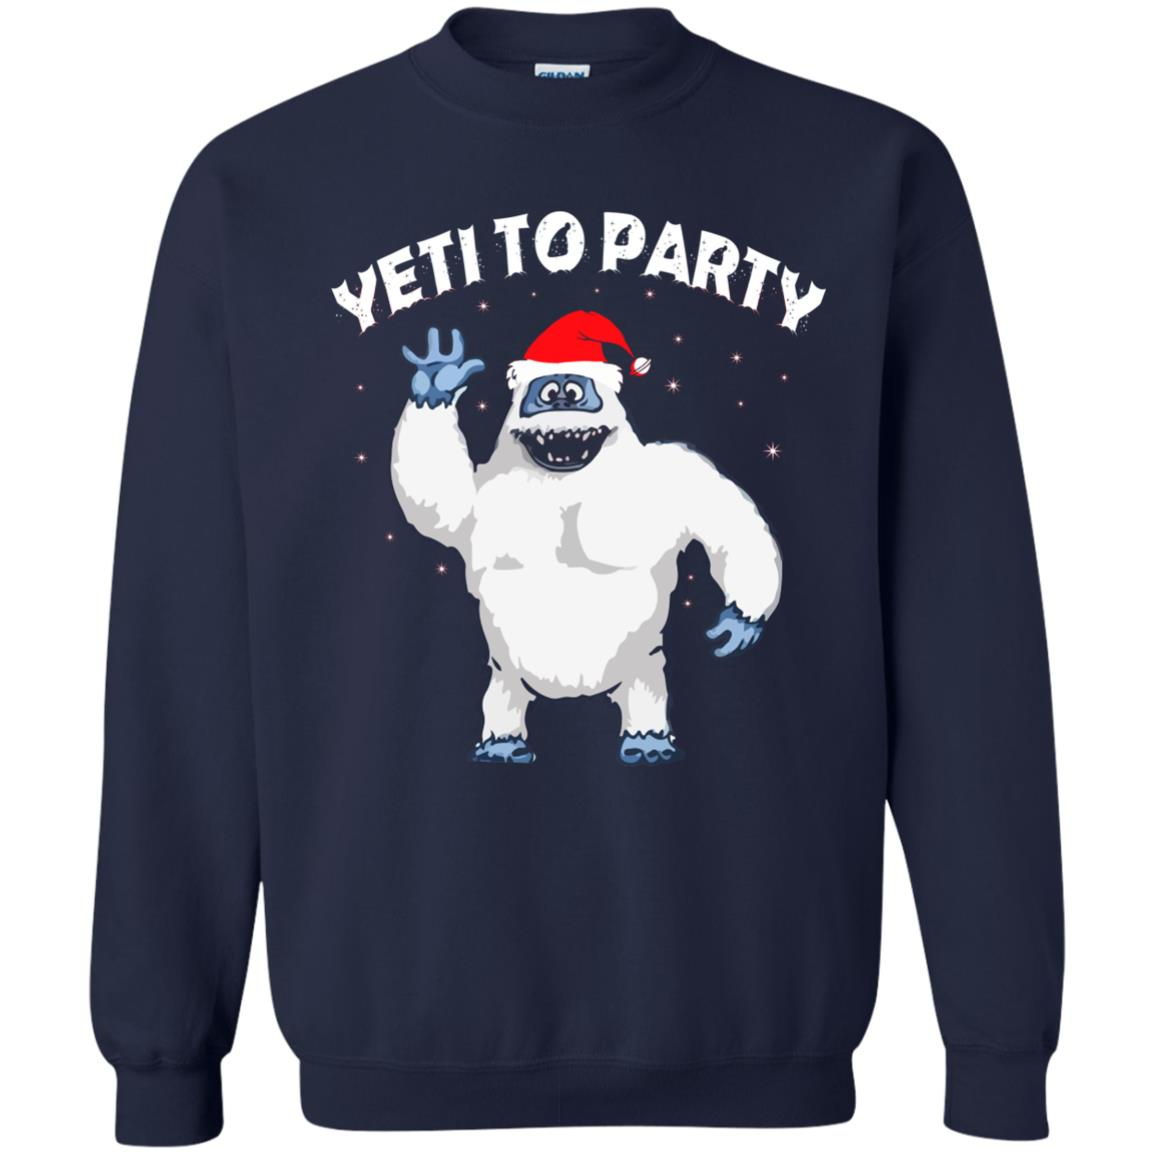 image 32 - Yeti to Party Christmas Sweater, Hoodie